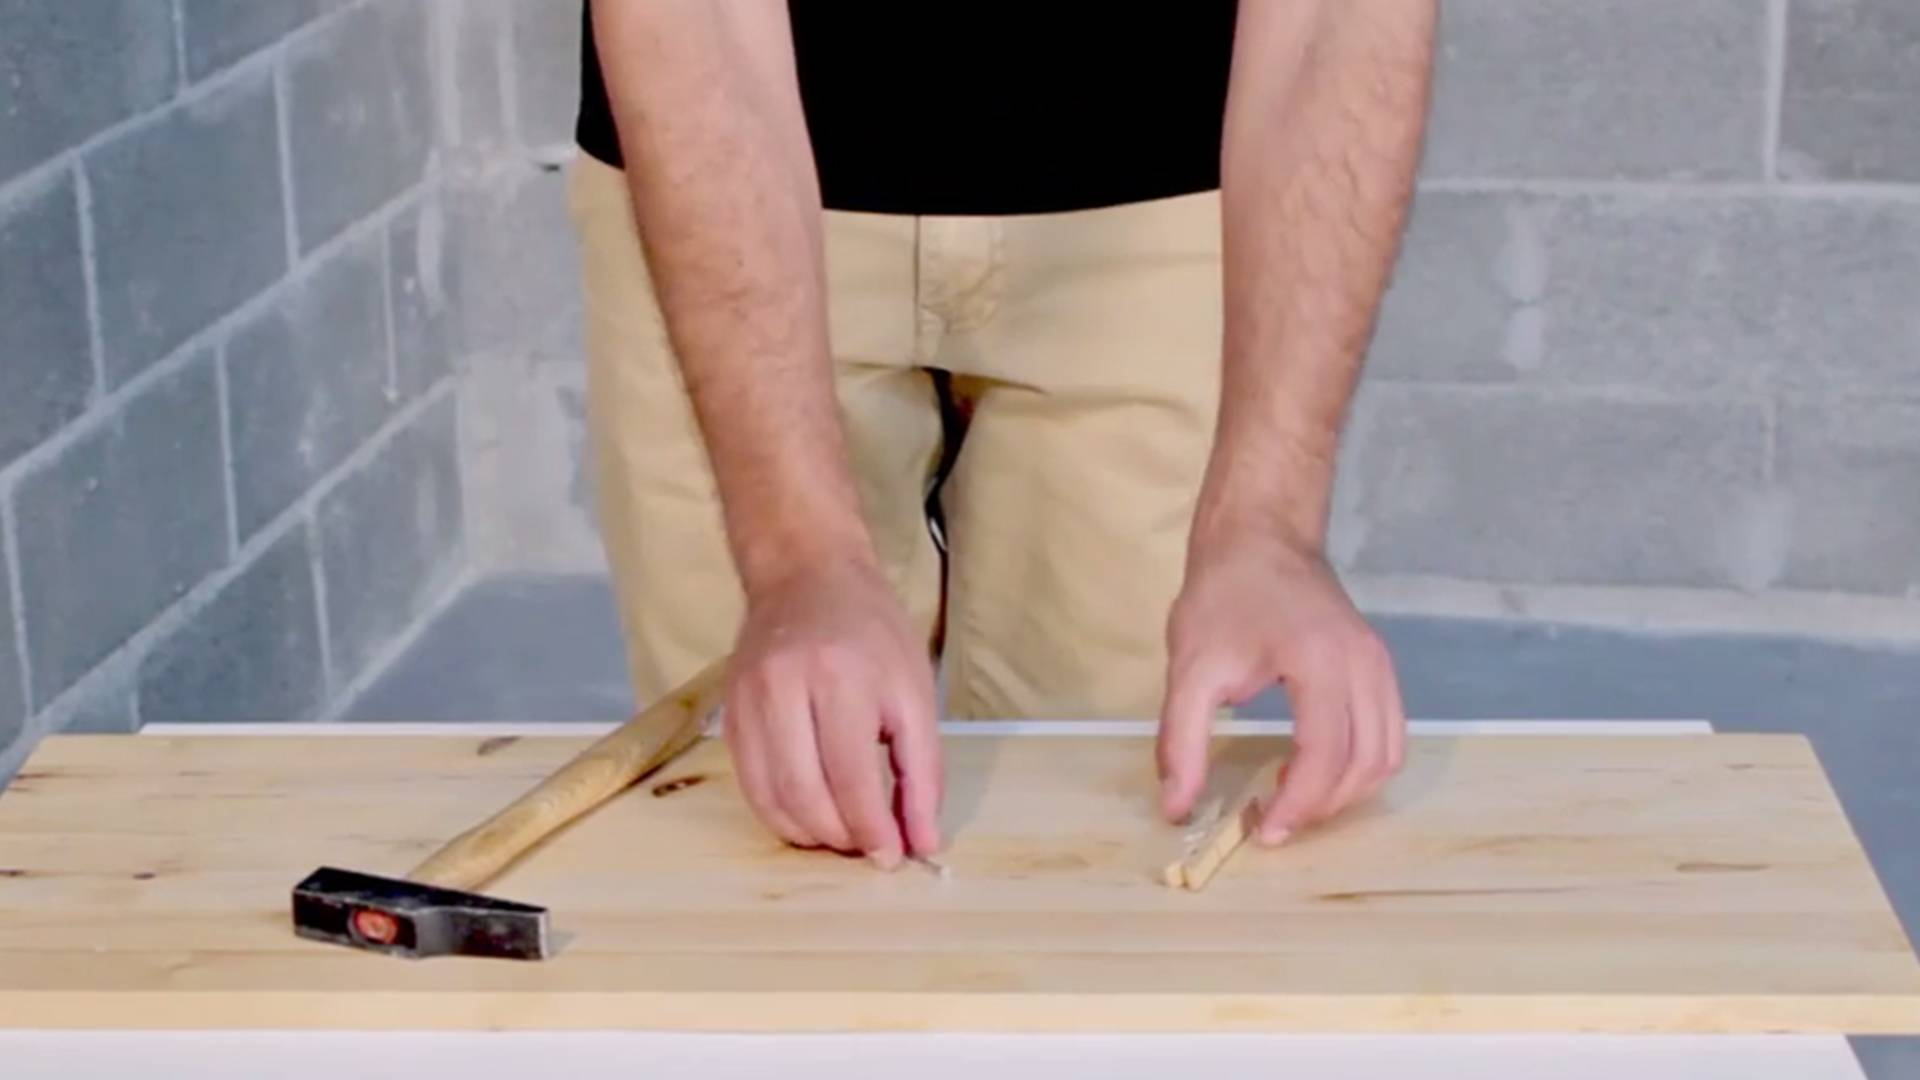 DIY Tips - How to avoid hammering our fingers